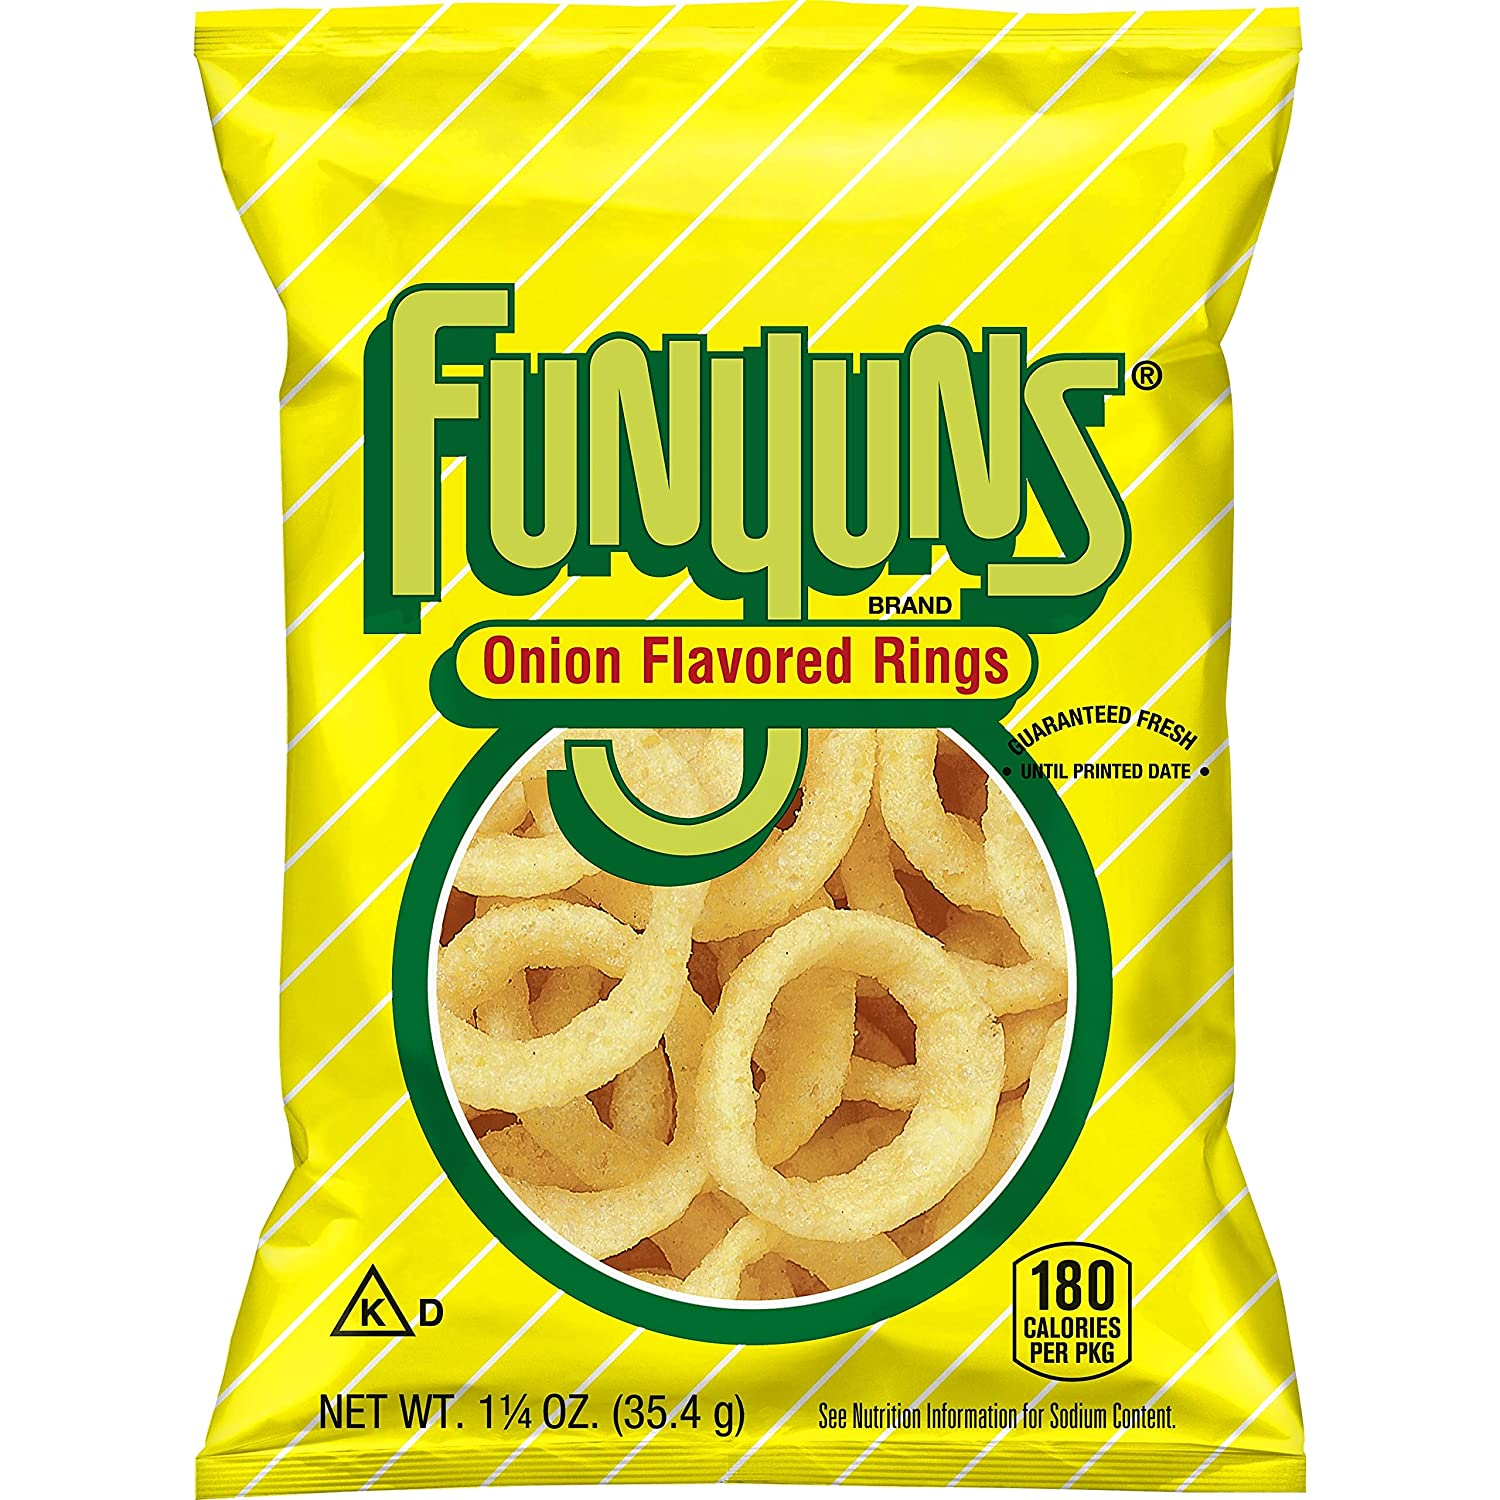 Funyuns Onion Flavored Rings, 1 25 Ounce (Pack of 64)